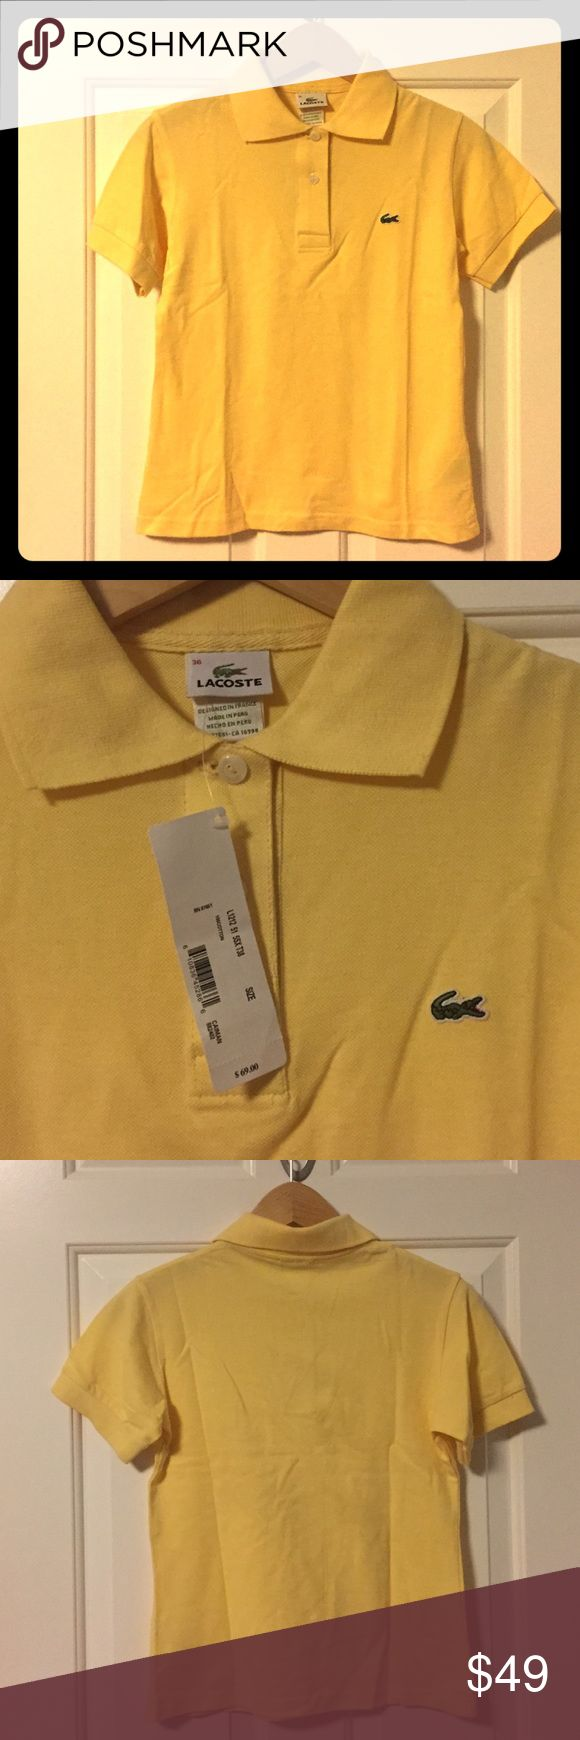 NEW Lacoste Polo Shirt size 36/USA S This is a brand NEW with tags Lacoste yellow polo size EU 36/ USA S. Lacoste Tops Tees - Short Sleeve